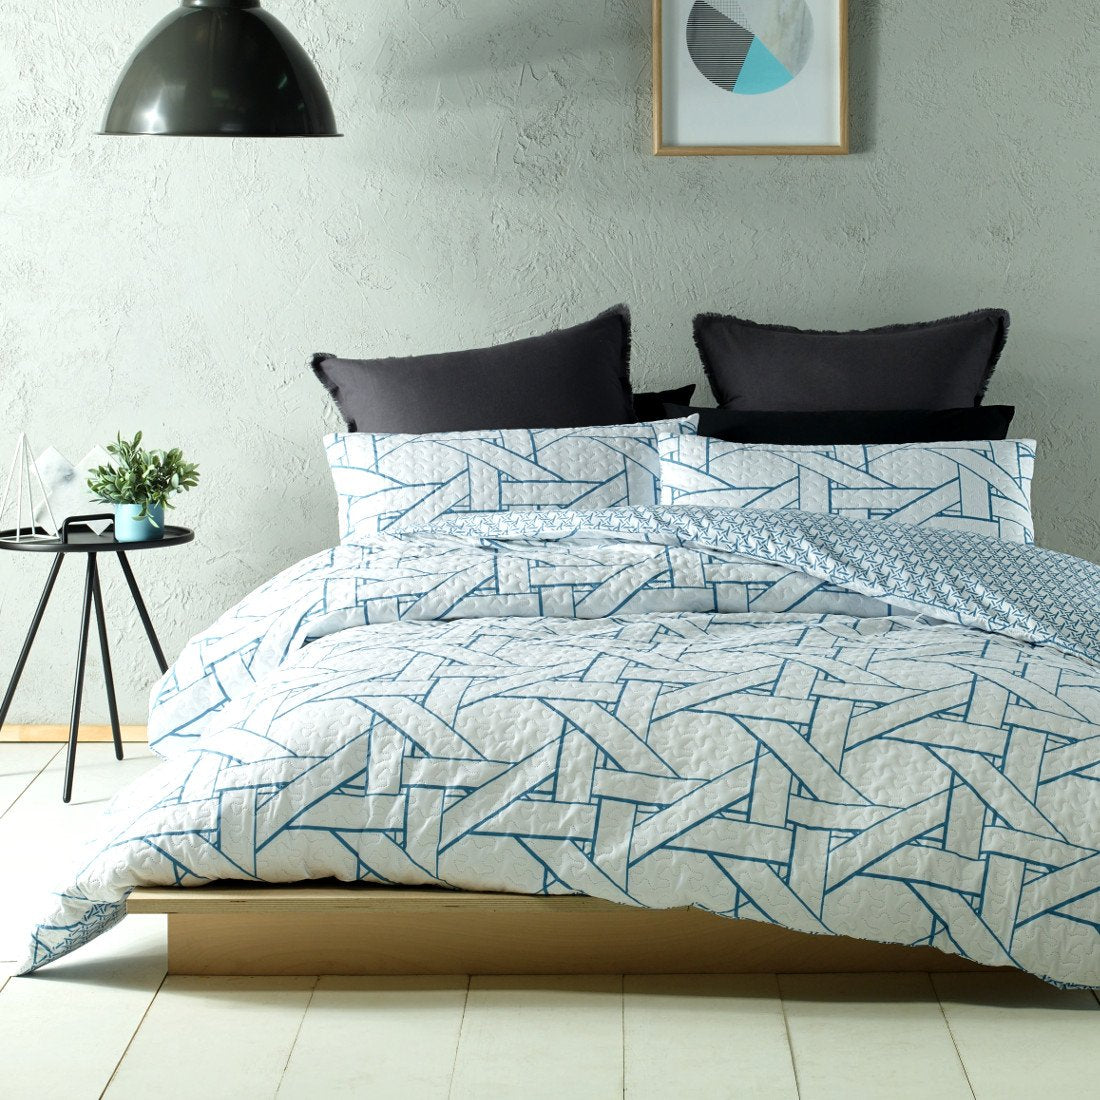 Reversible, Minimal, understated colors like white and blue feature on this quilt cover set.